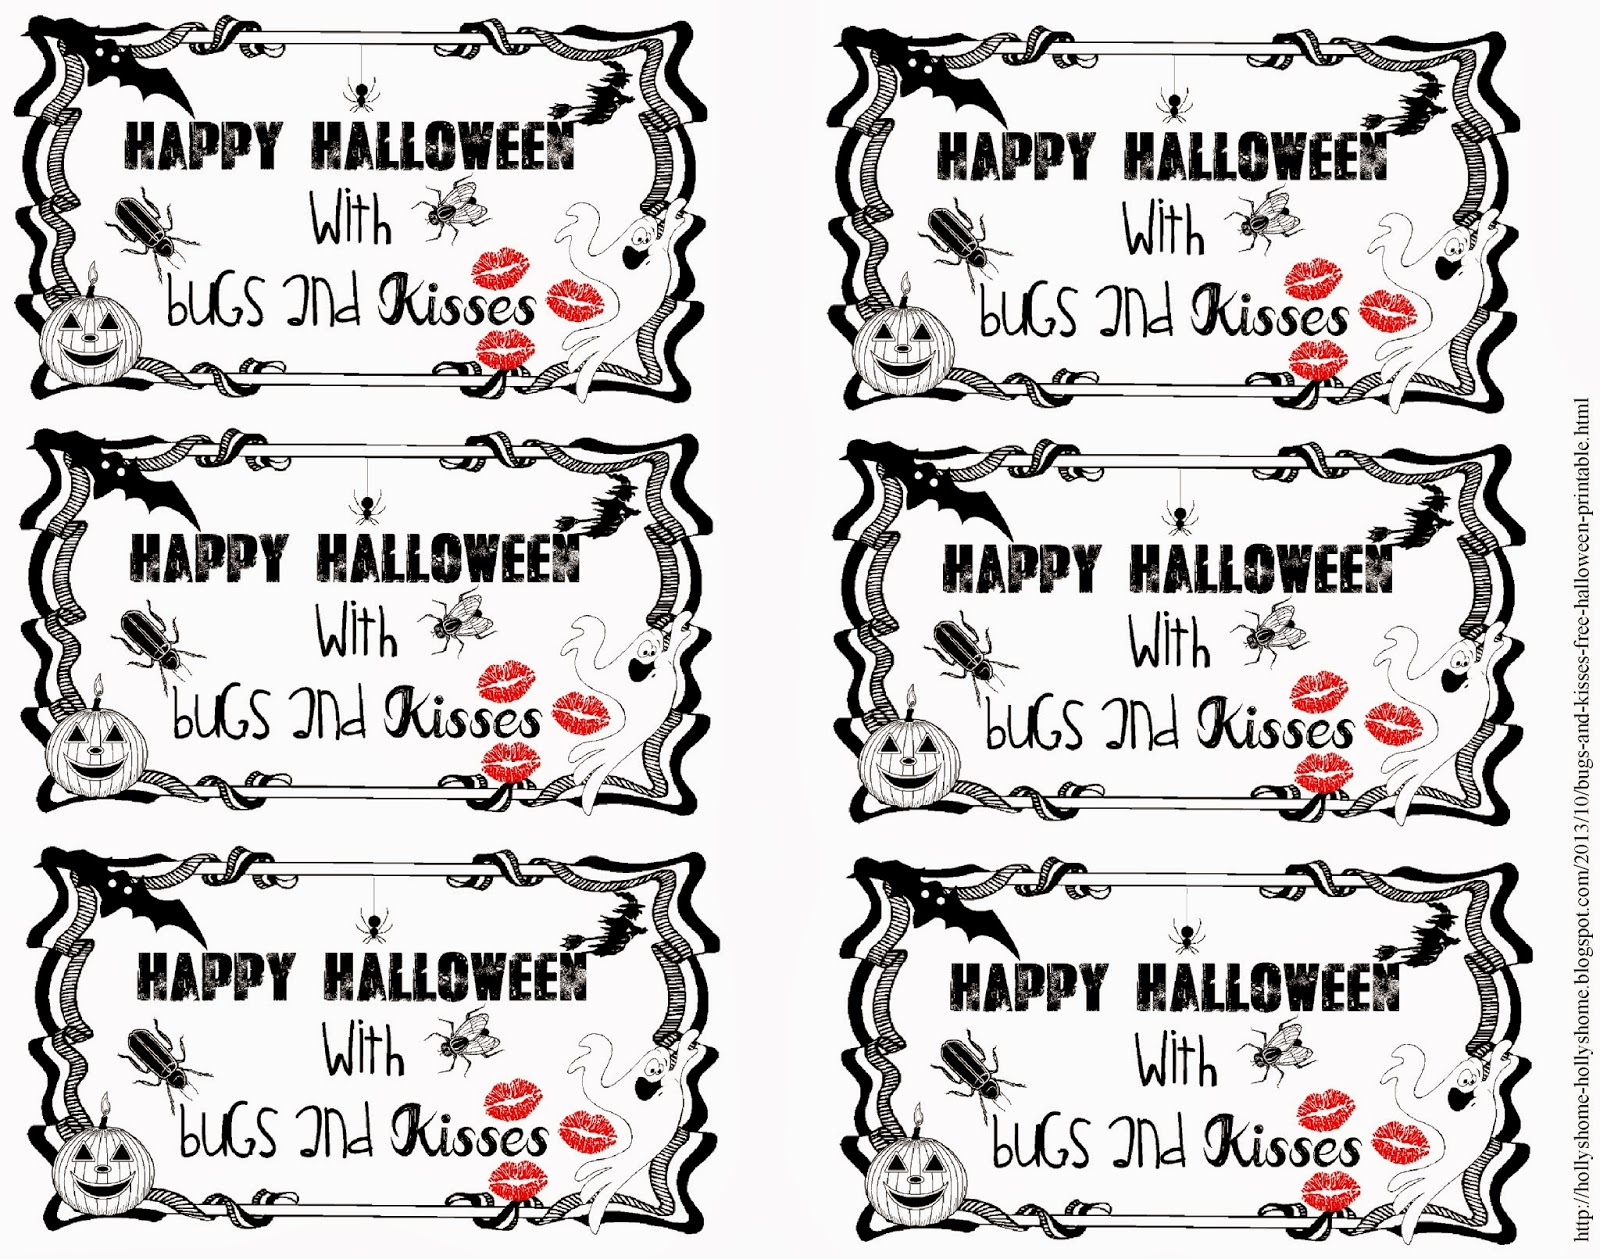 image relating to Bugs and Kisses Free Printable identified as HollysHome Spouse and children Daily life: Insects and Kisses - a No cost Halloween